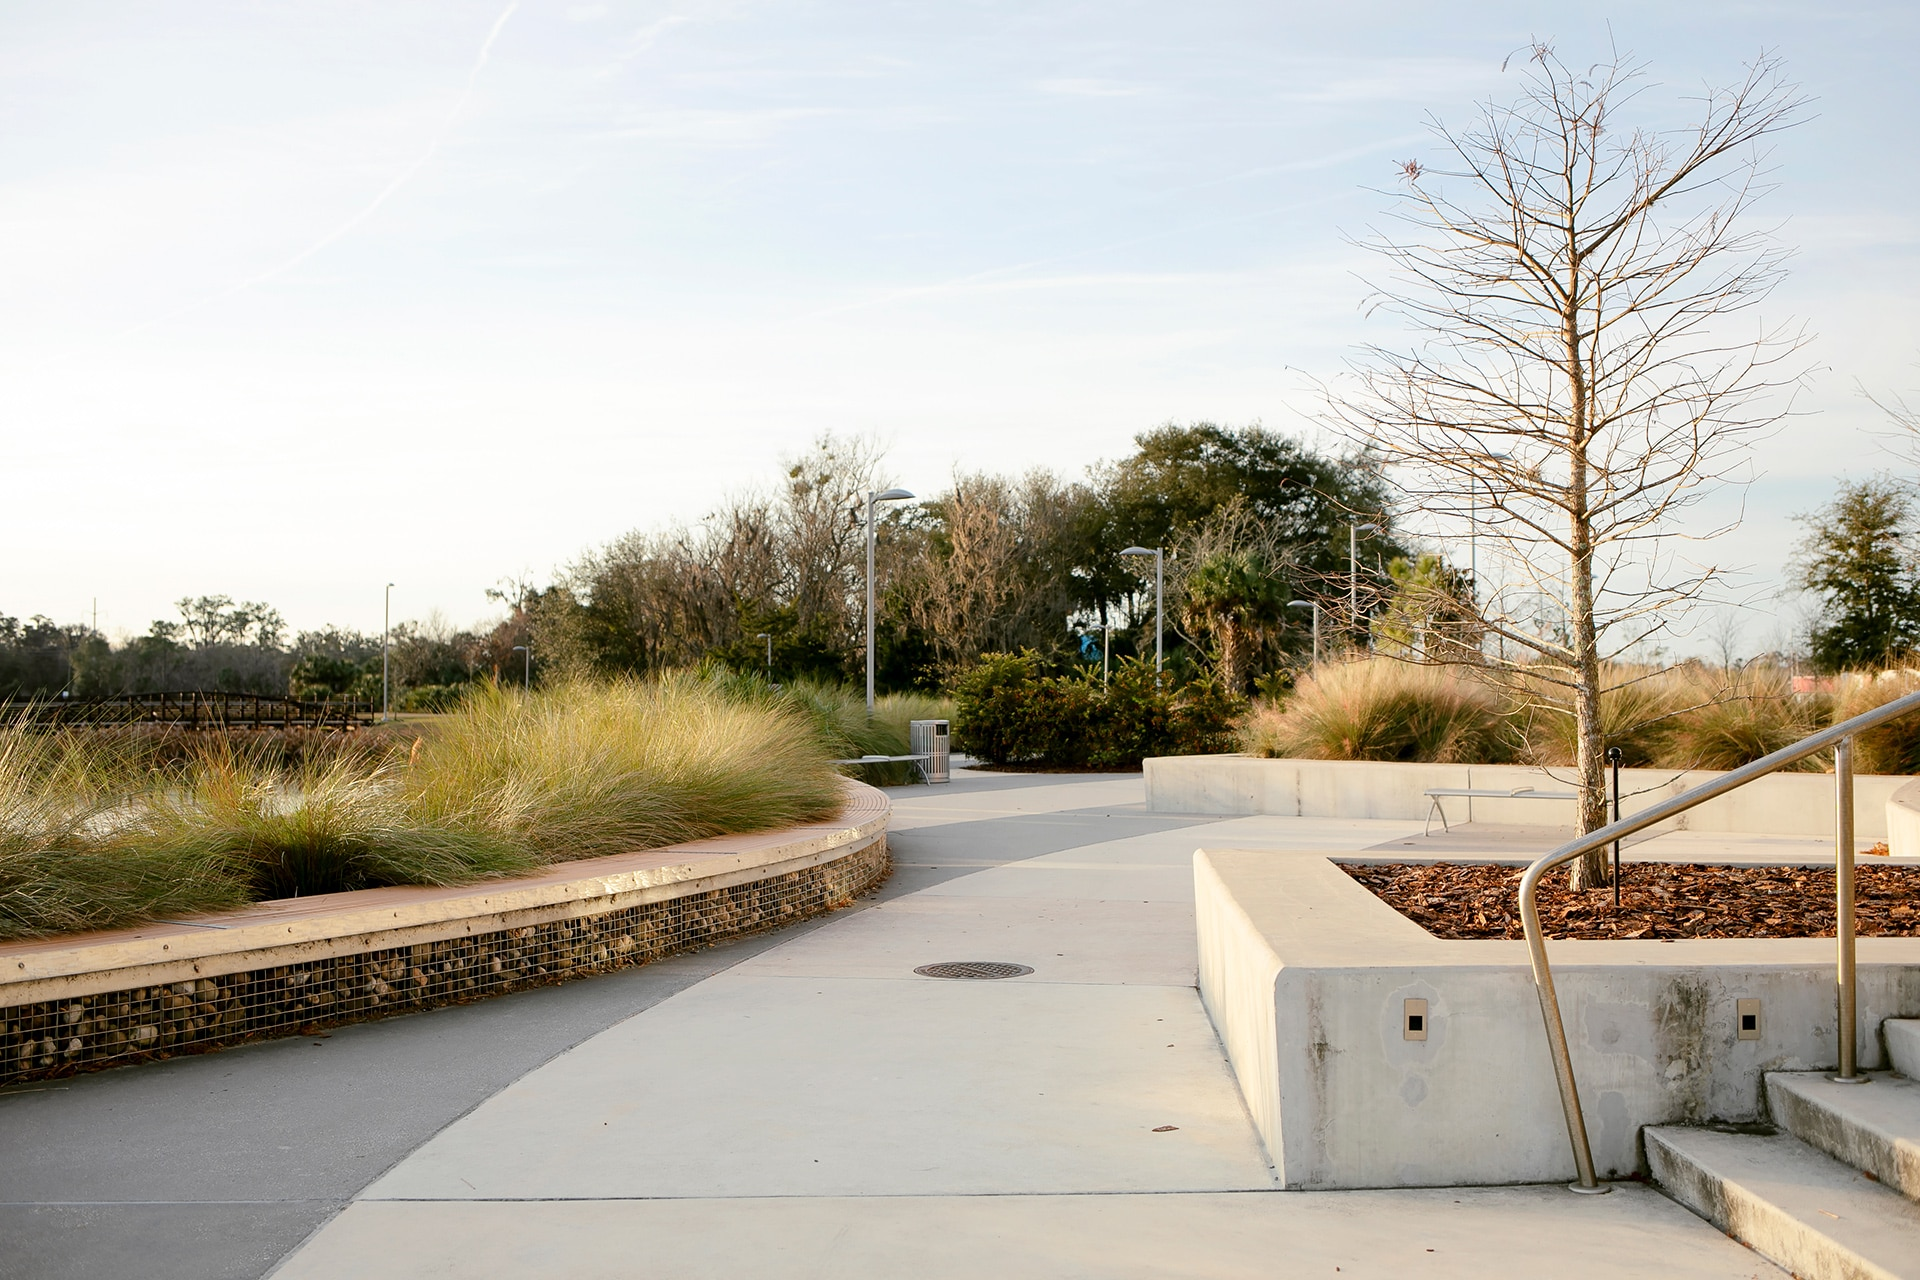 View of a concrete walkway with stairs and planters.